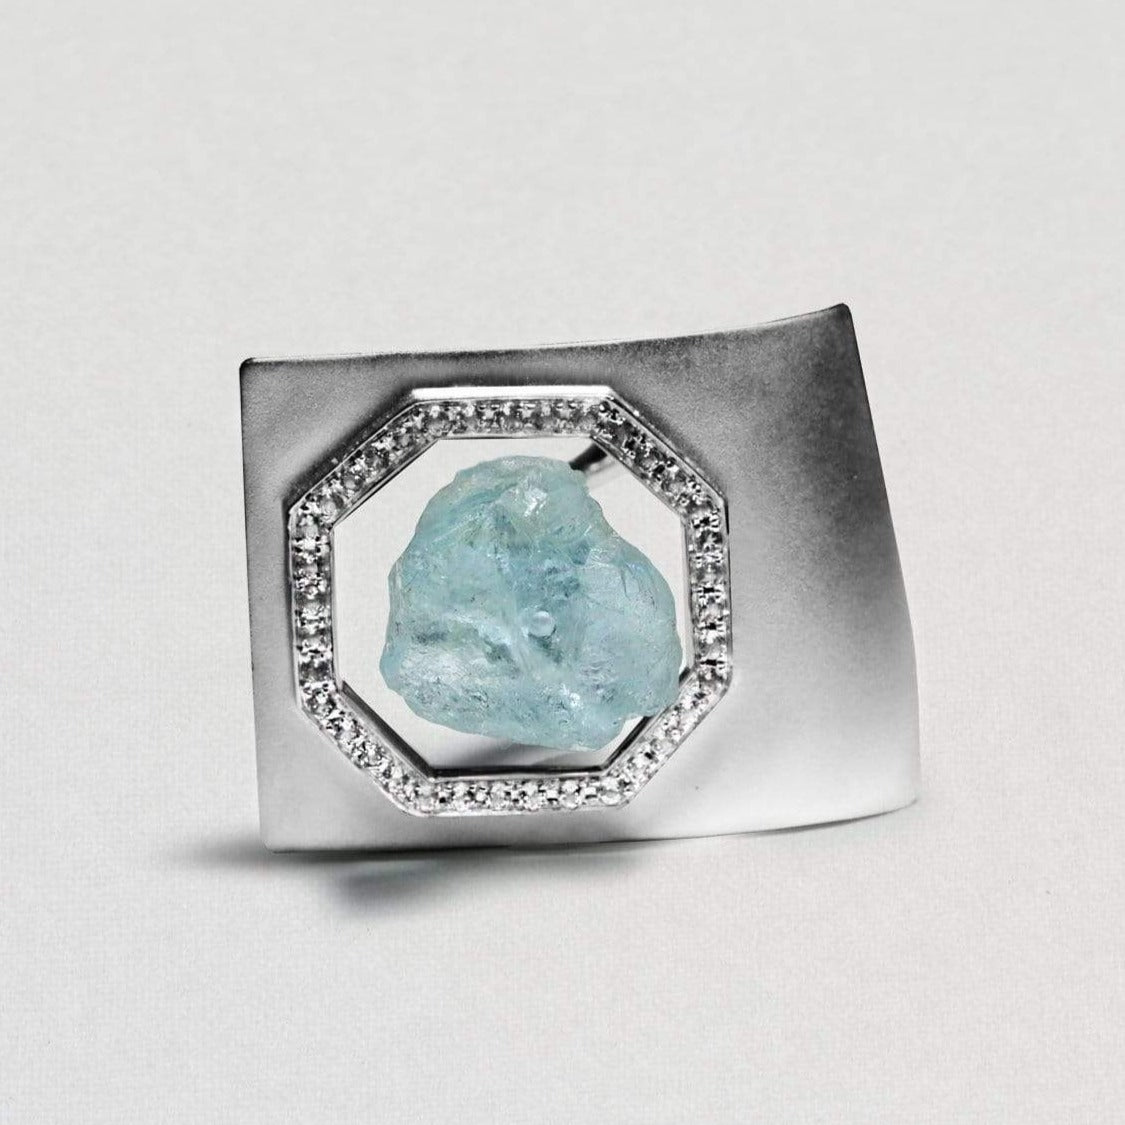 Naevia Ring, Aquamarine, Exclusive, Rhodium, Sapphire, silver, spo-disabled, StoneColor:Blue, Style:Statement, Type:LargeSoloStone Ring